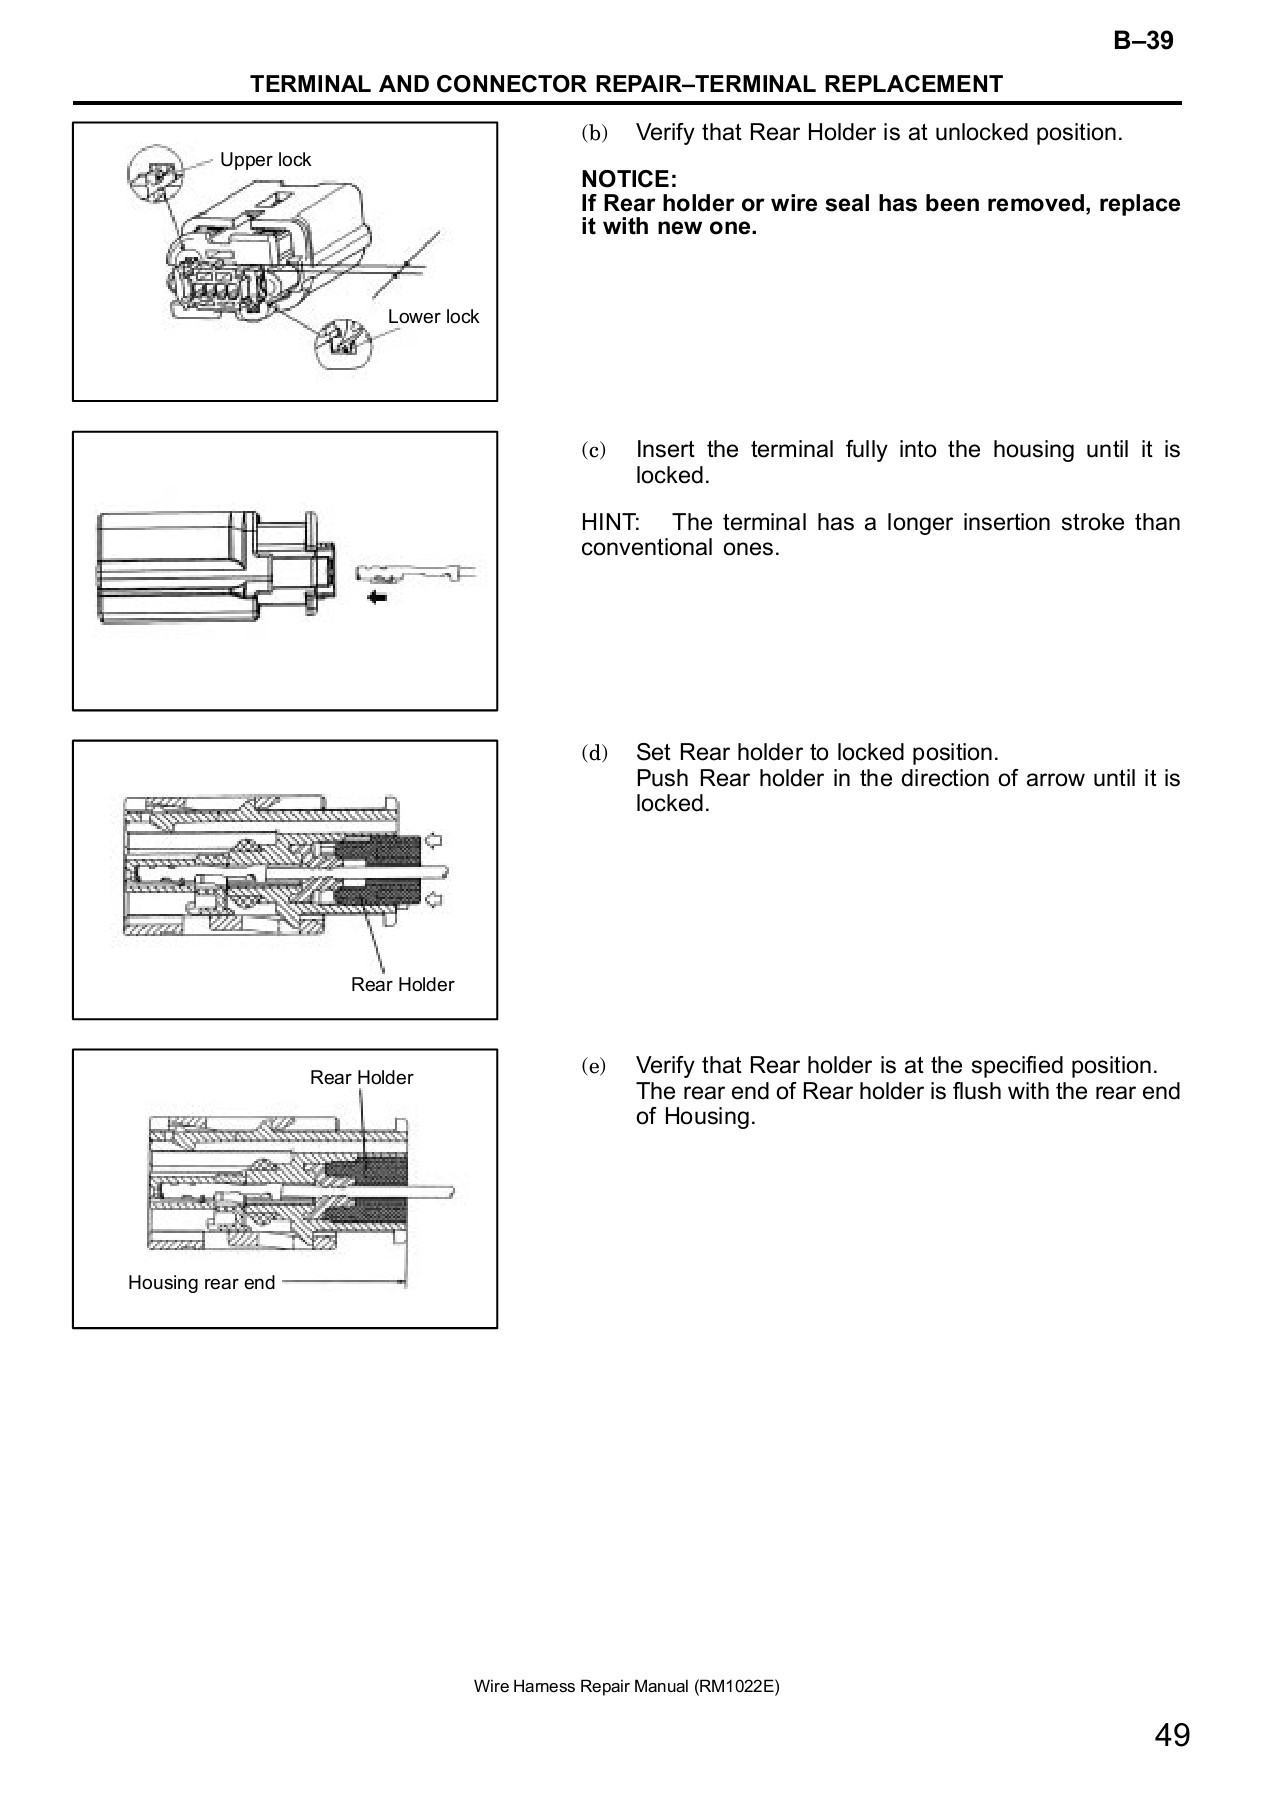 medium resolution of toyota wiring repair manual pdfdrive com pages 51 100 text version fliphtml5